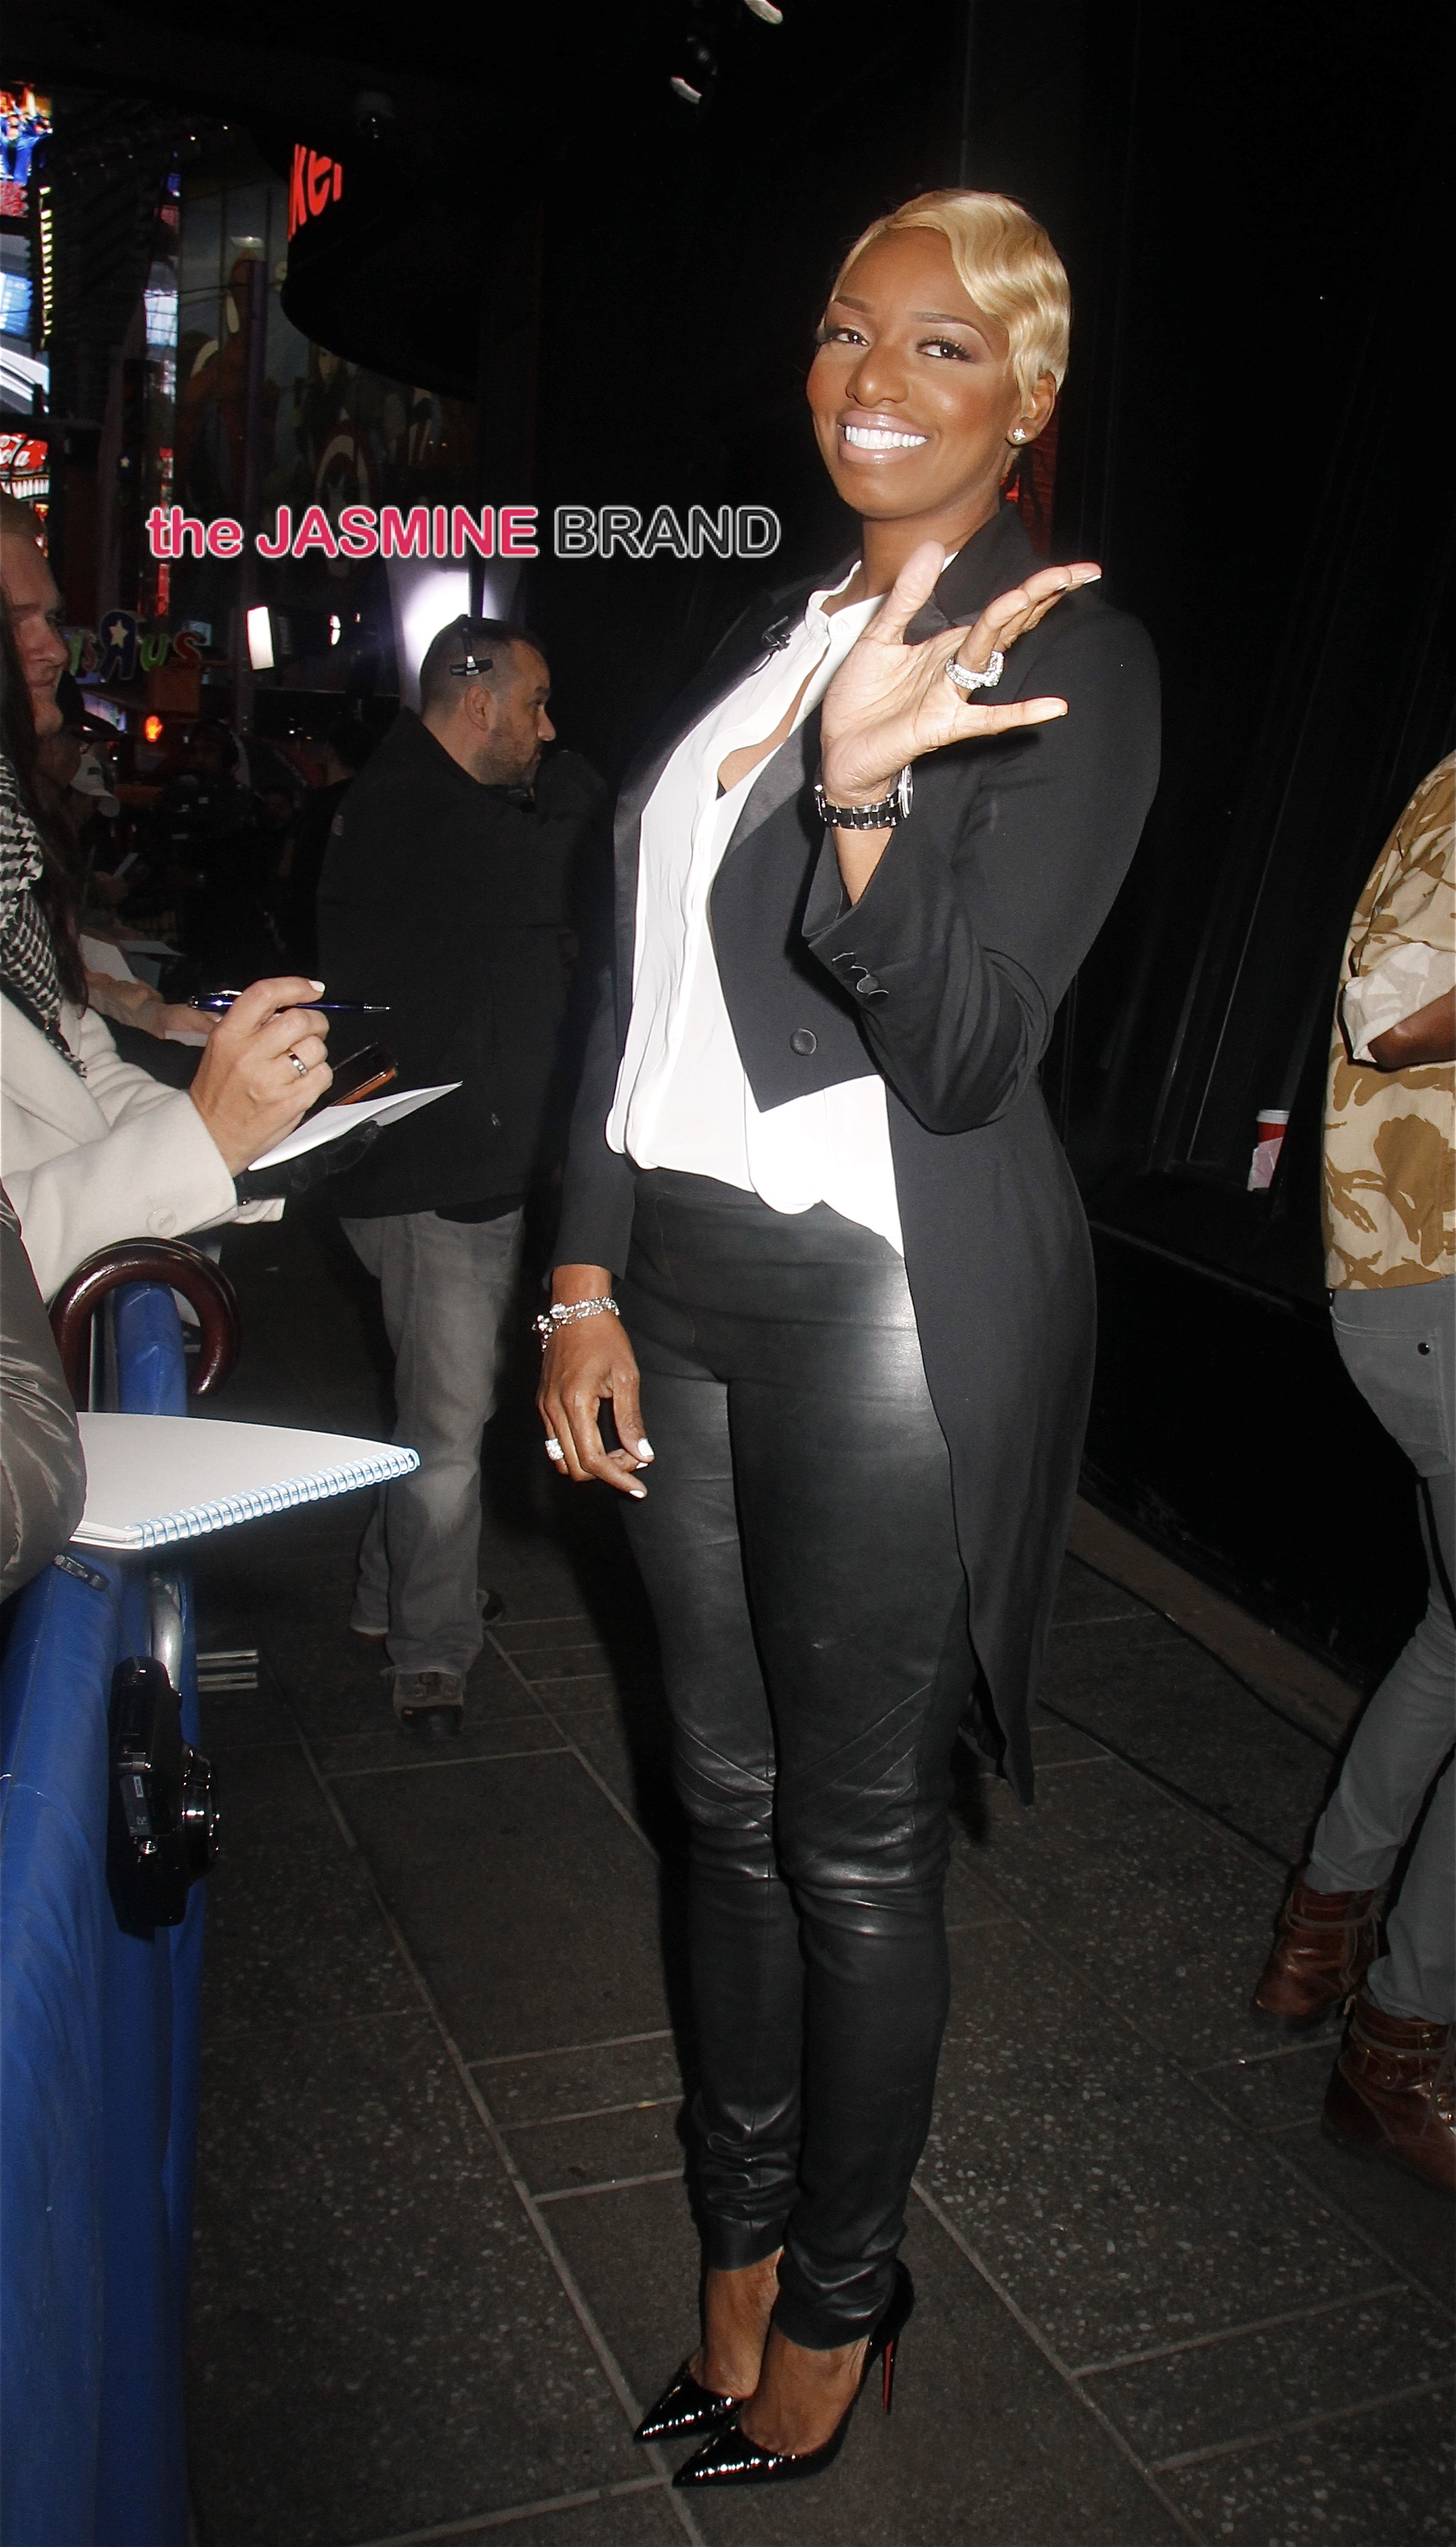 Reality TV star and actress NeNe Leakes visits 'Good Morning America' in NYC's Times Square